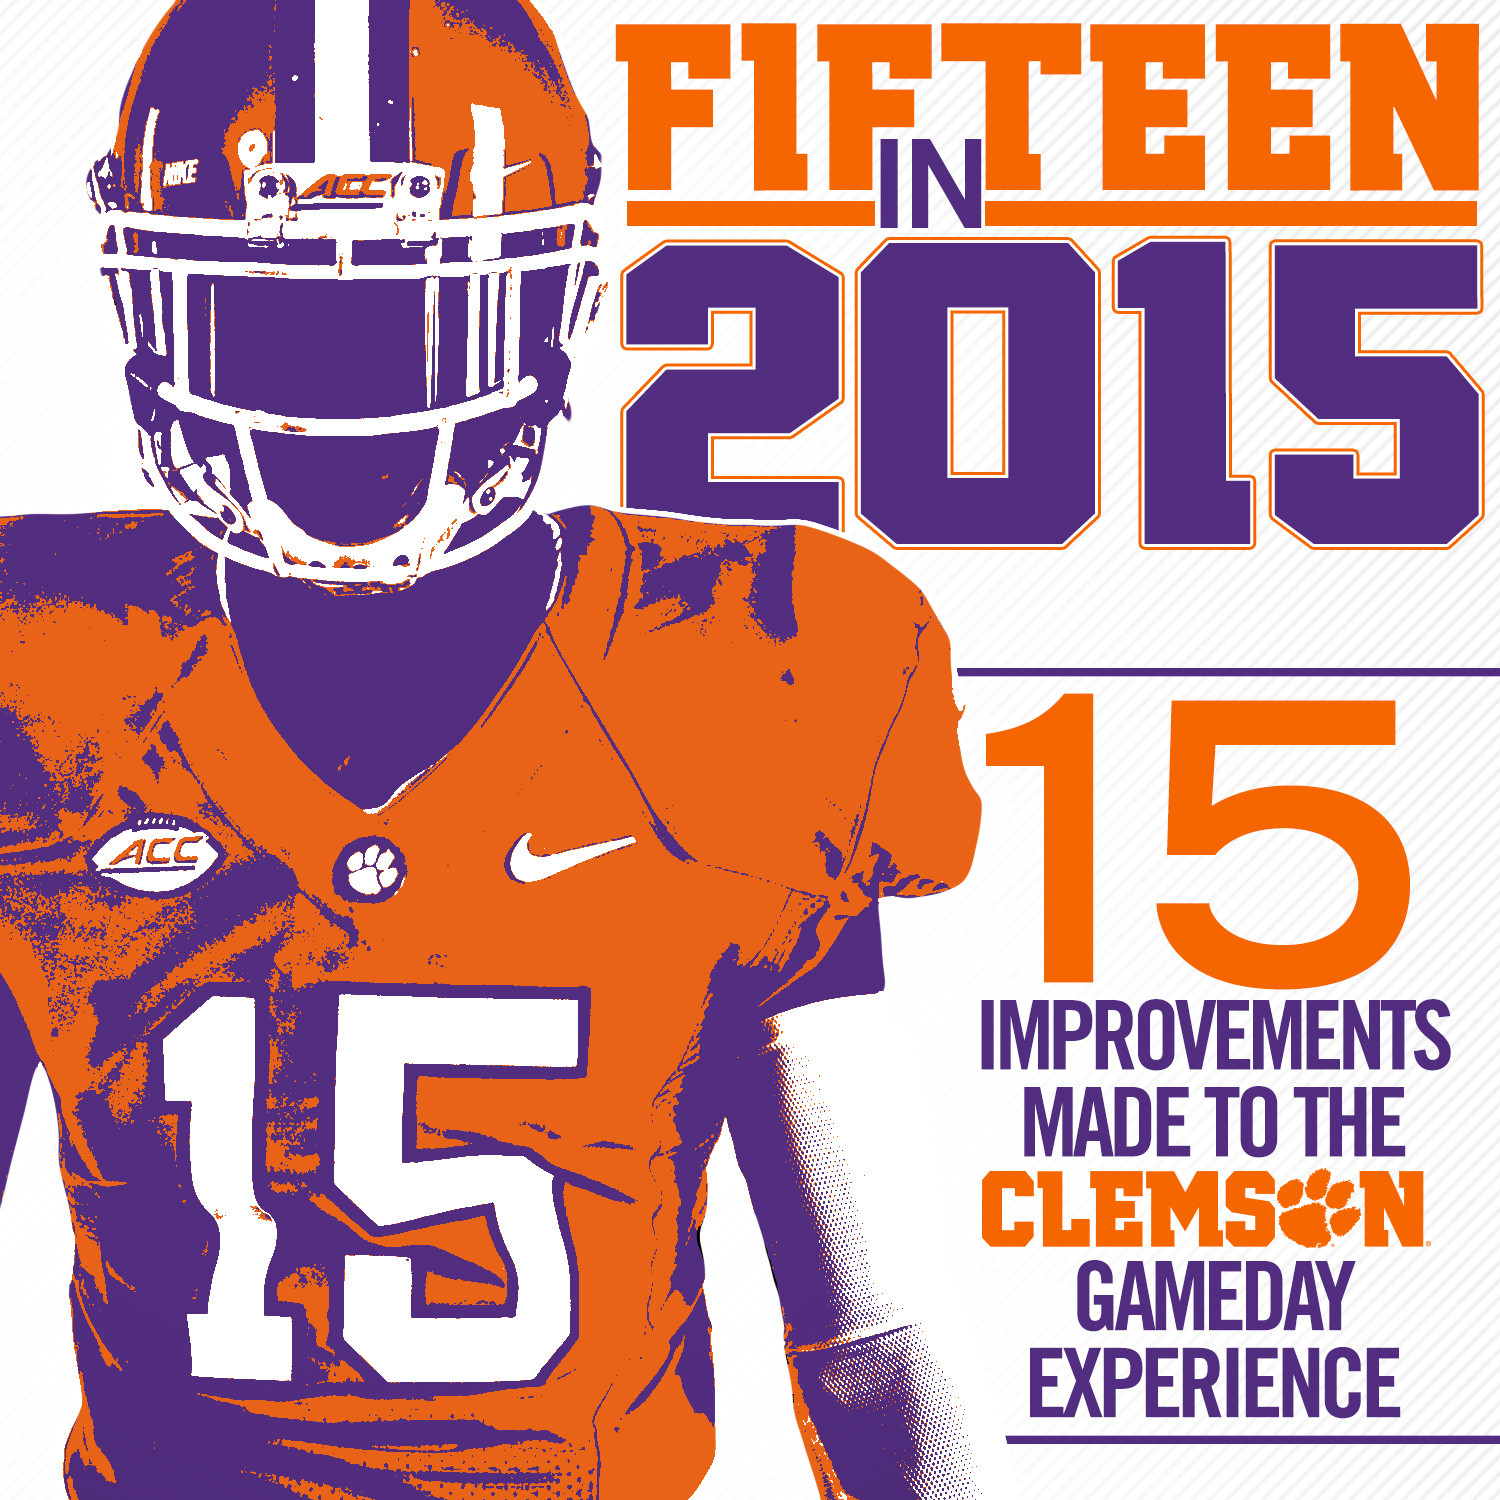 """15 in 15"" Gameday Experience Improvements Announced"